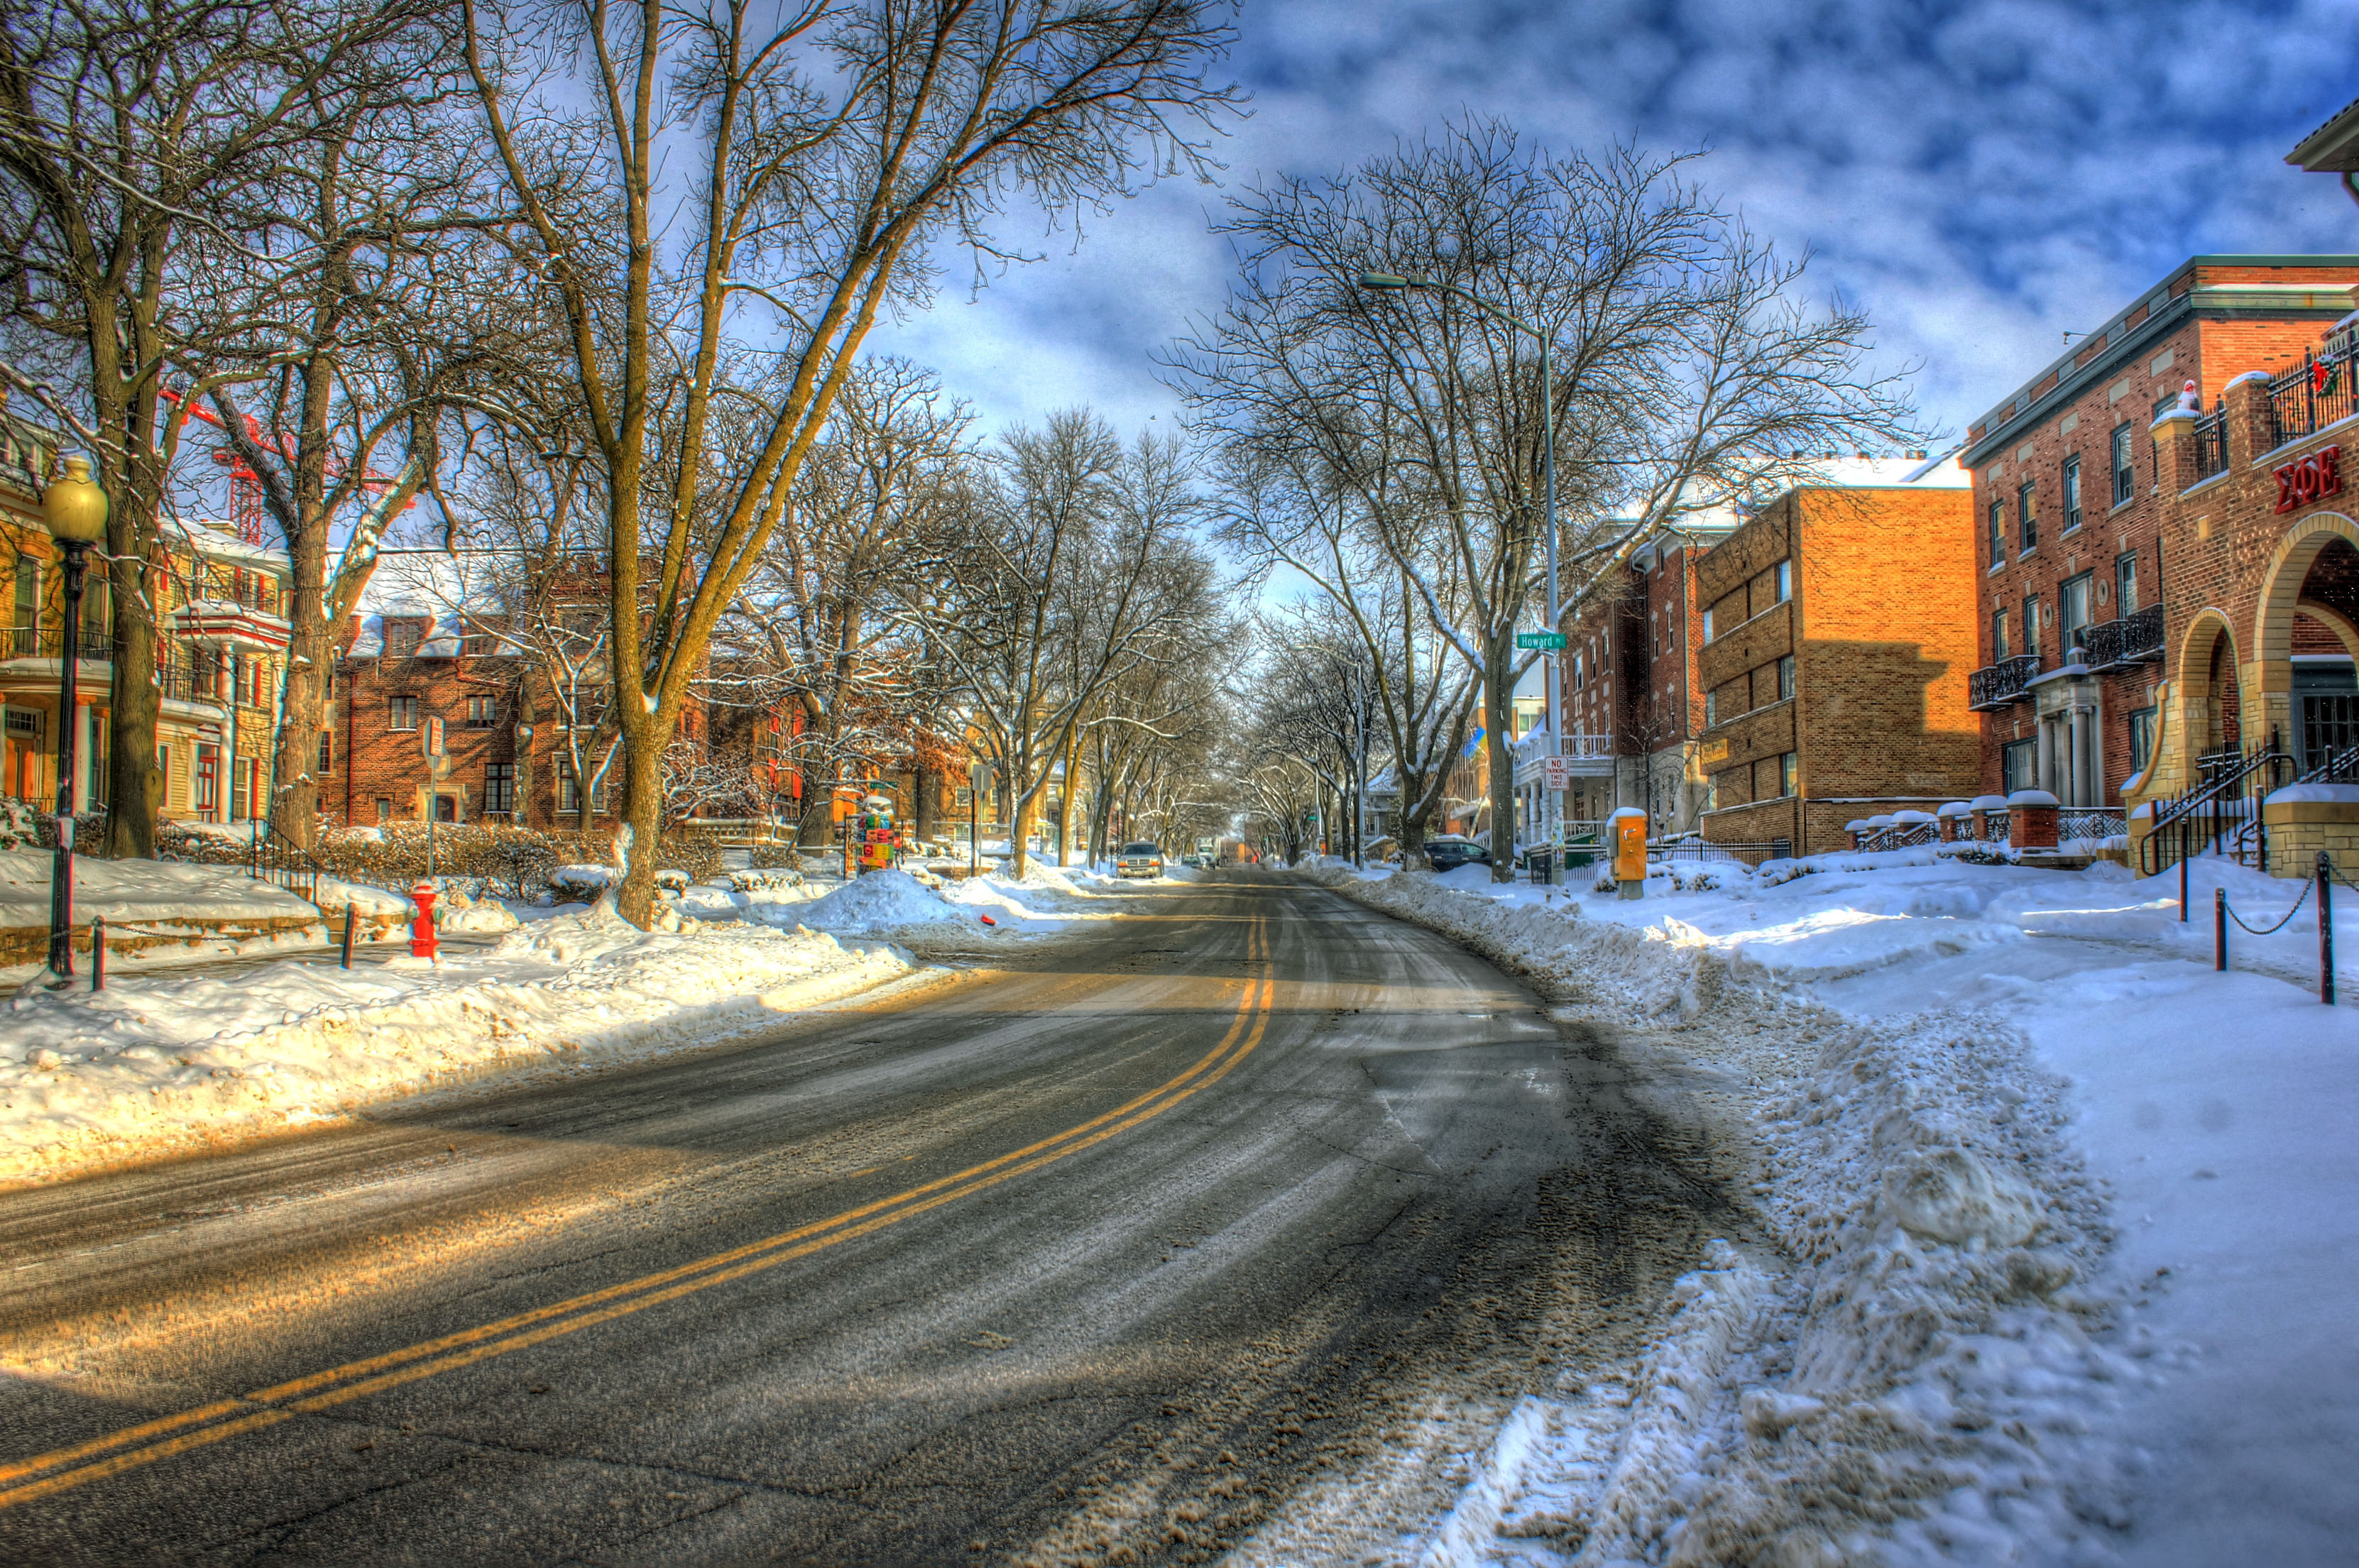 Fall Images Free Wallpaper Snowy Street In Madison Wisconsin Image Free Stock